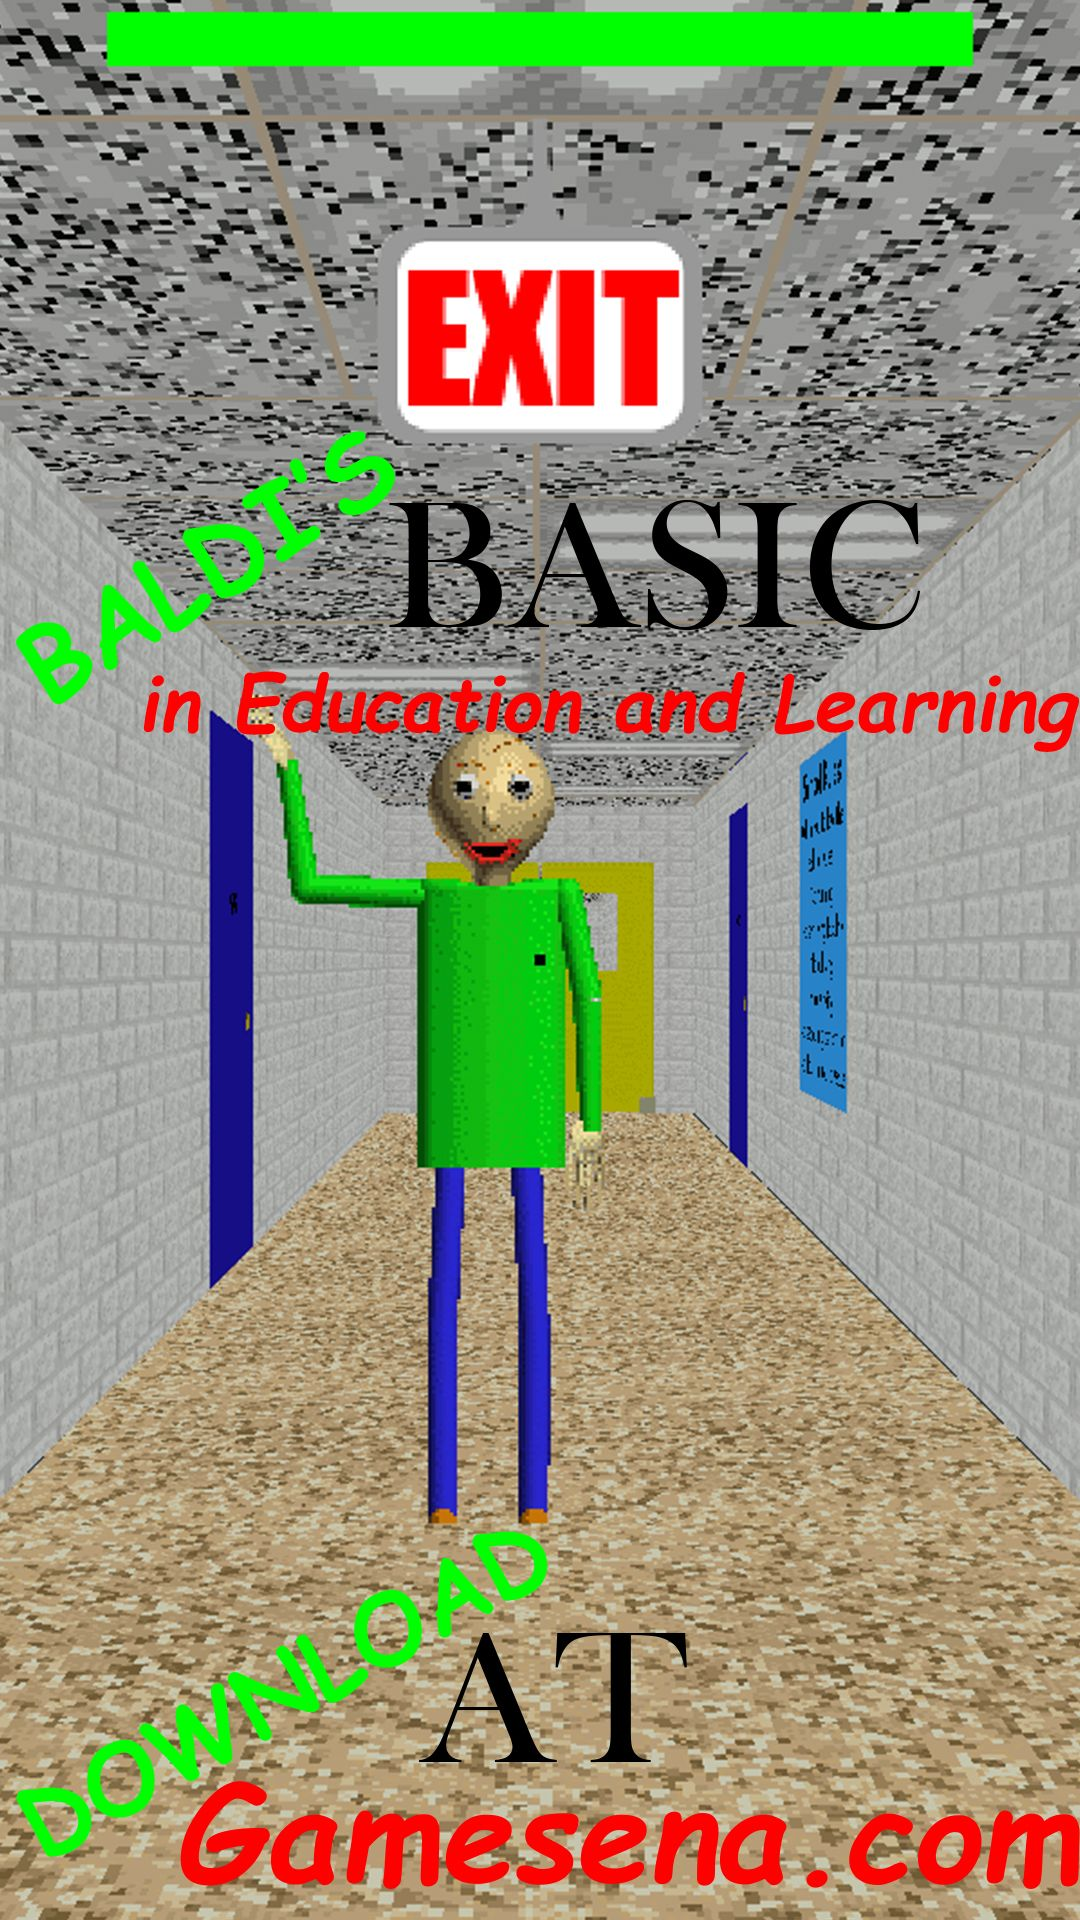 Baldi's Basics In Education and Learning may sound like an